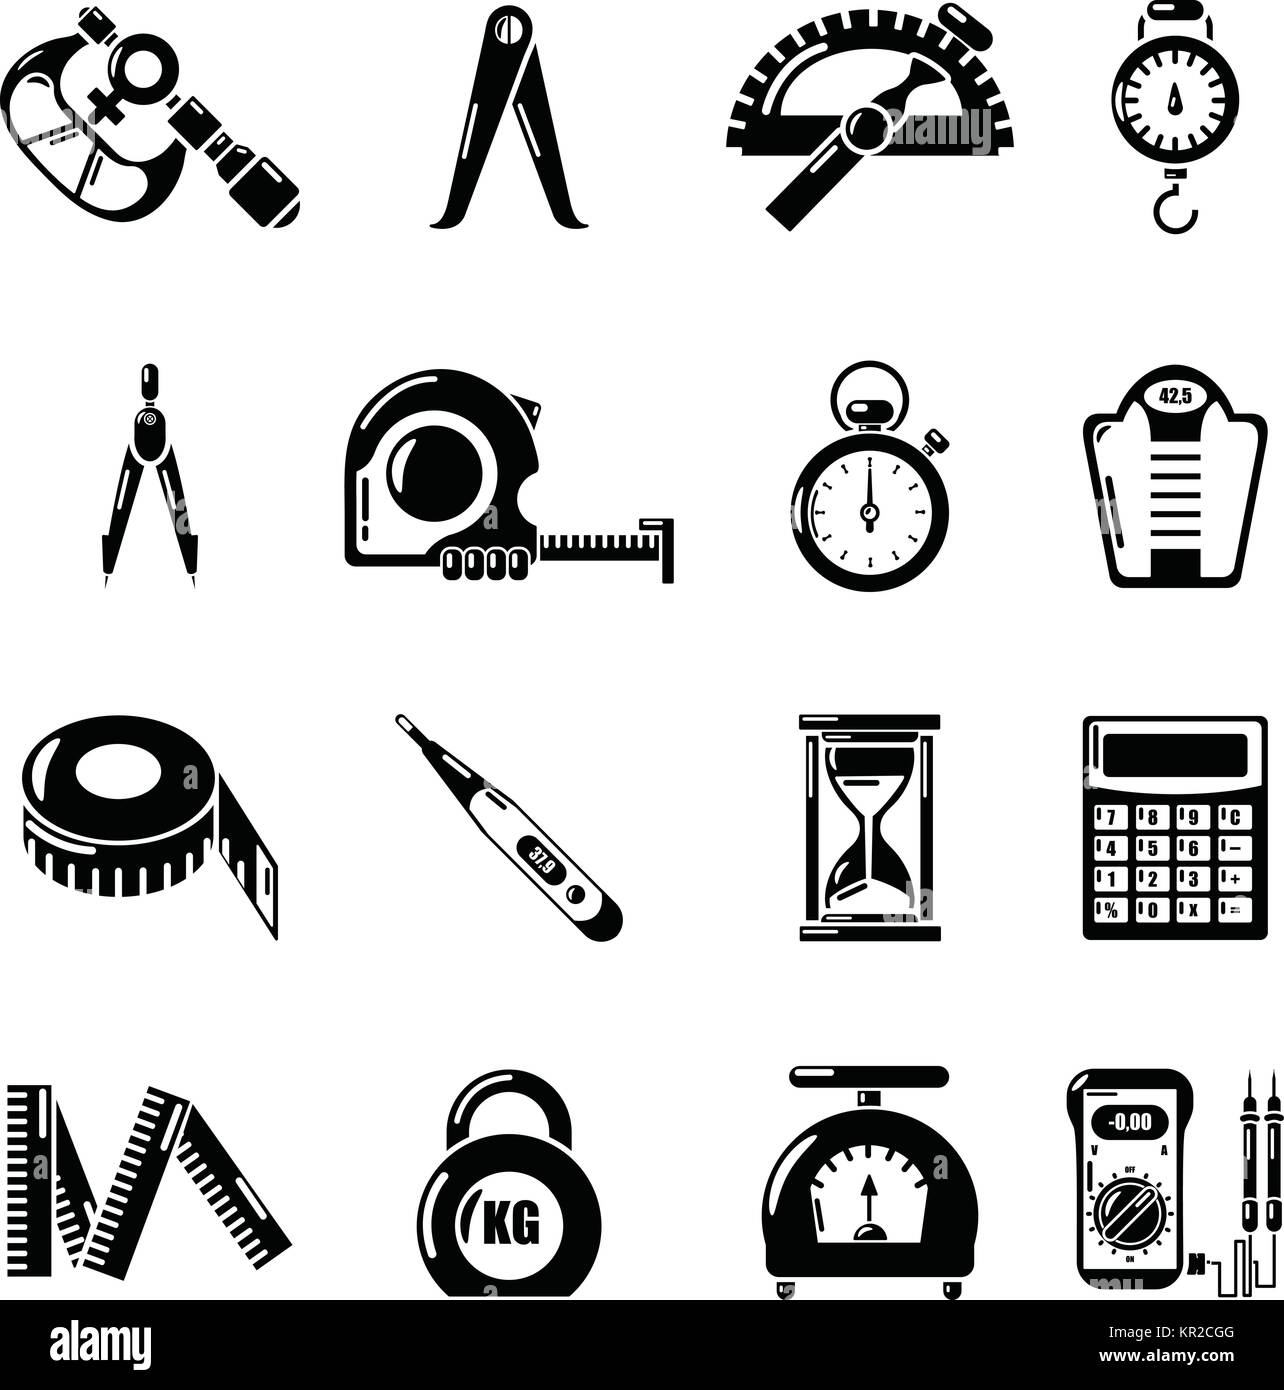 Measure precision icons set, simple style - Stock Image